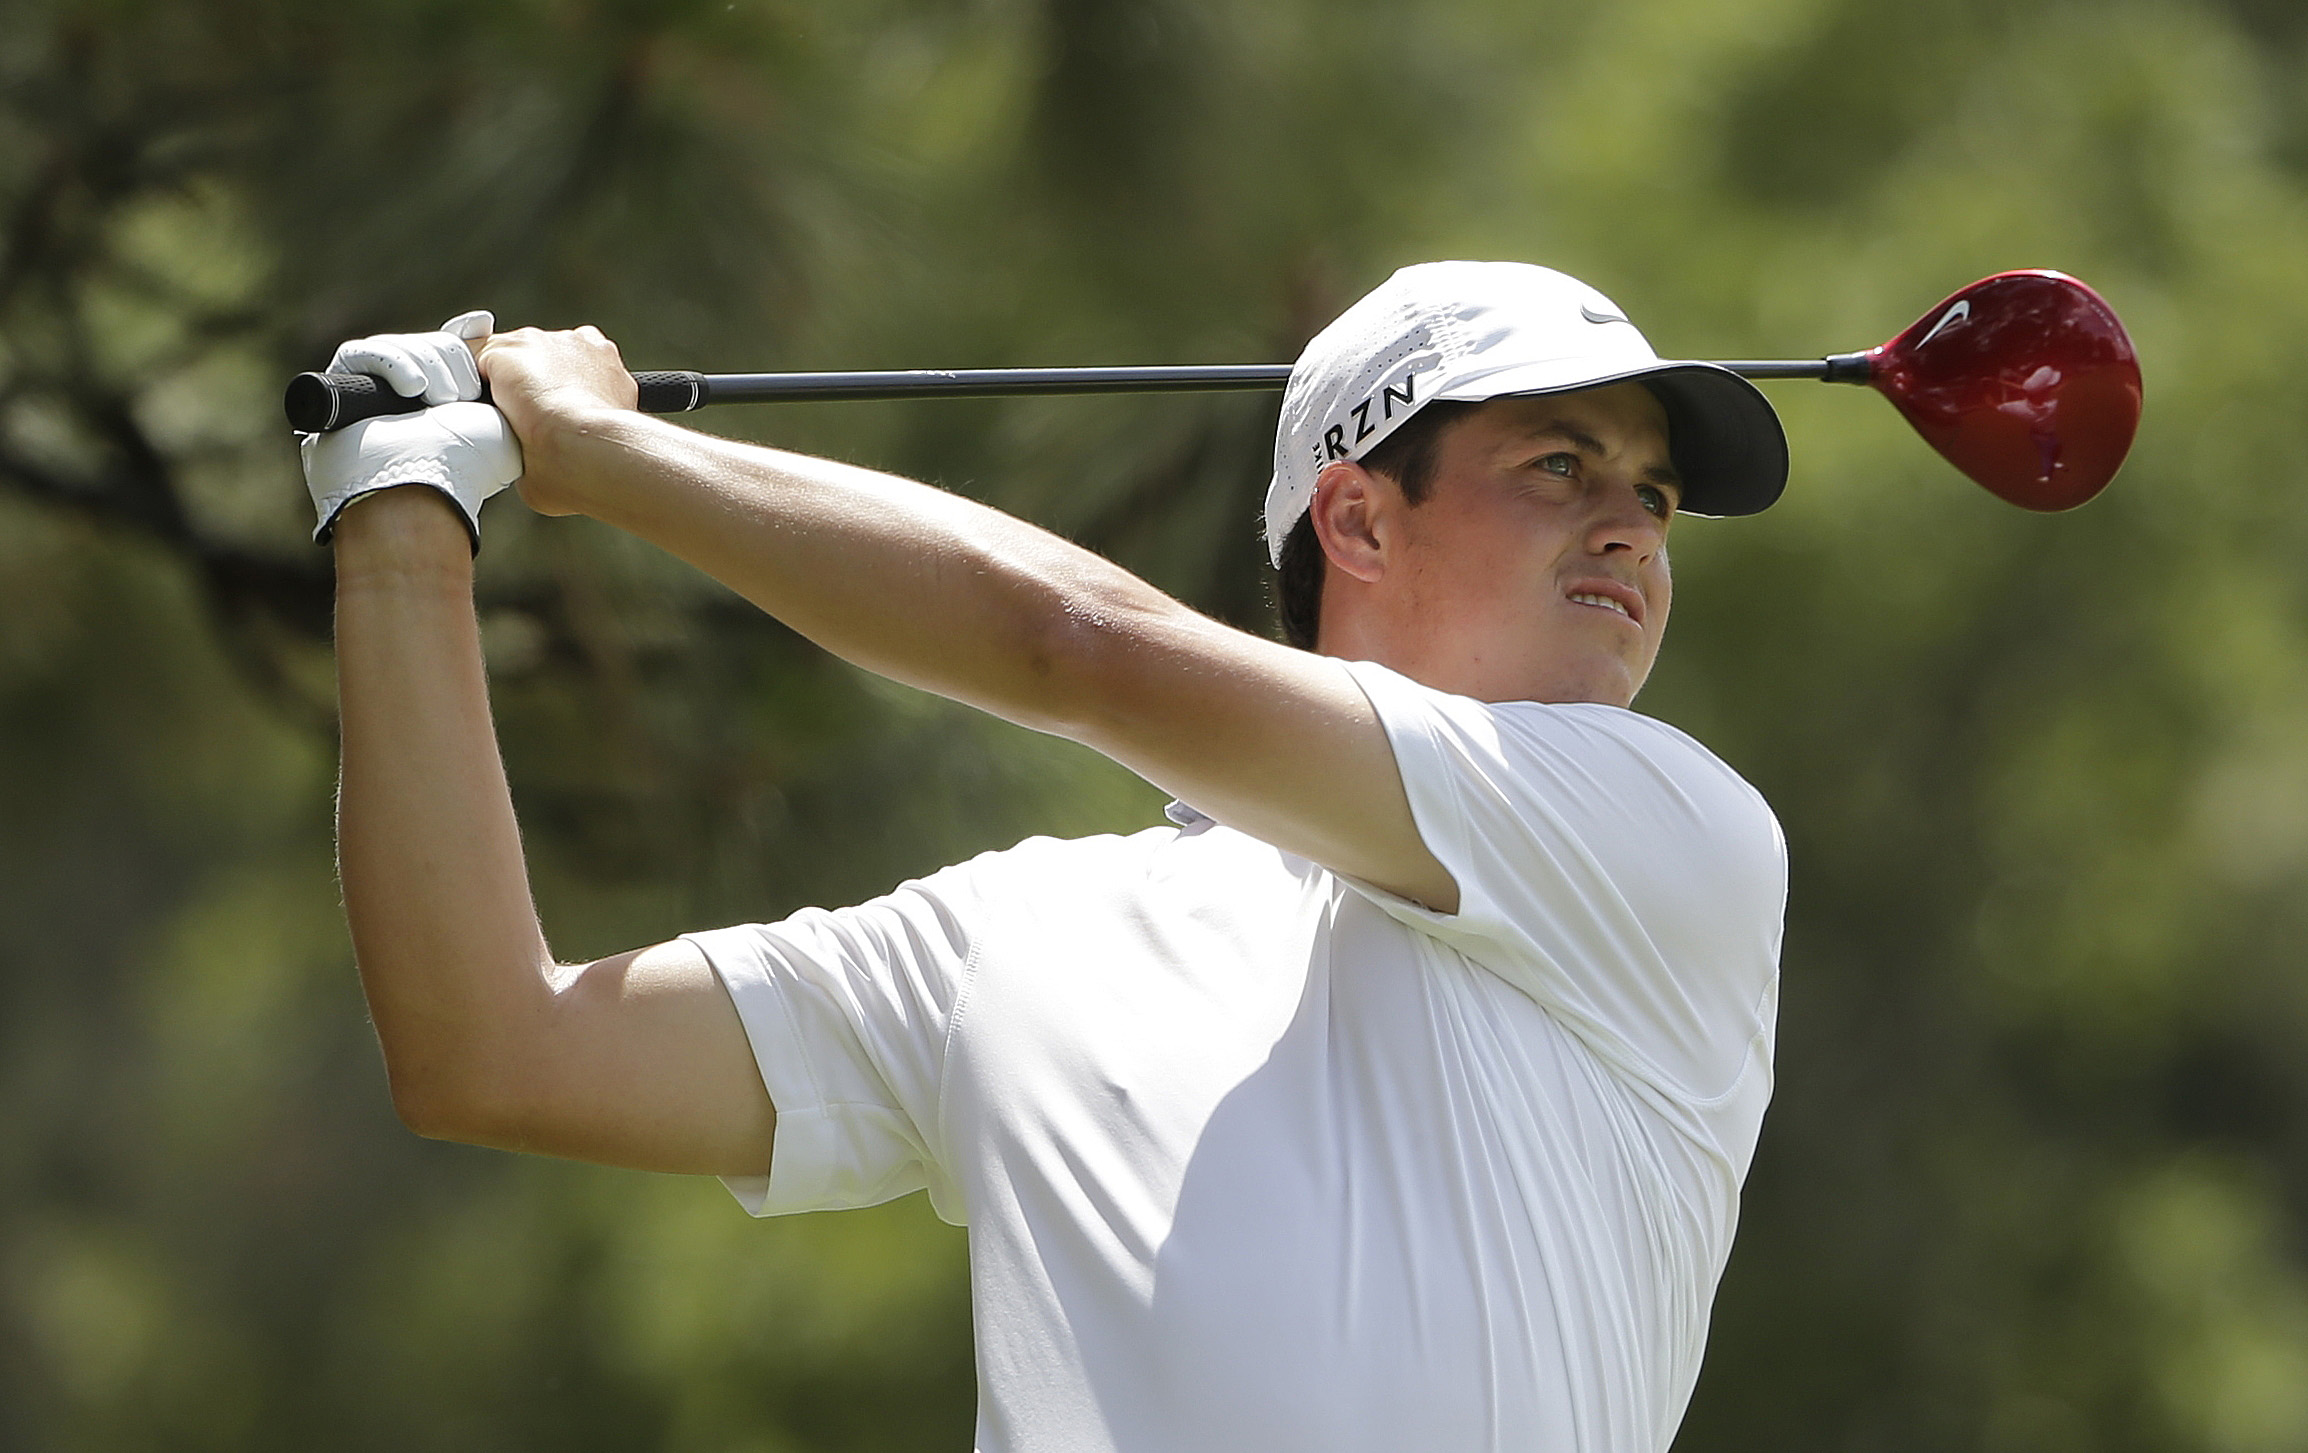 Cody Gribble watches his tee shot on the second hole during the first round of the U.S. Open golf tournament in Pinehurst, N.C., Thursday, June 12, 2014. (AP Photo/Chuck Burton)